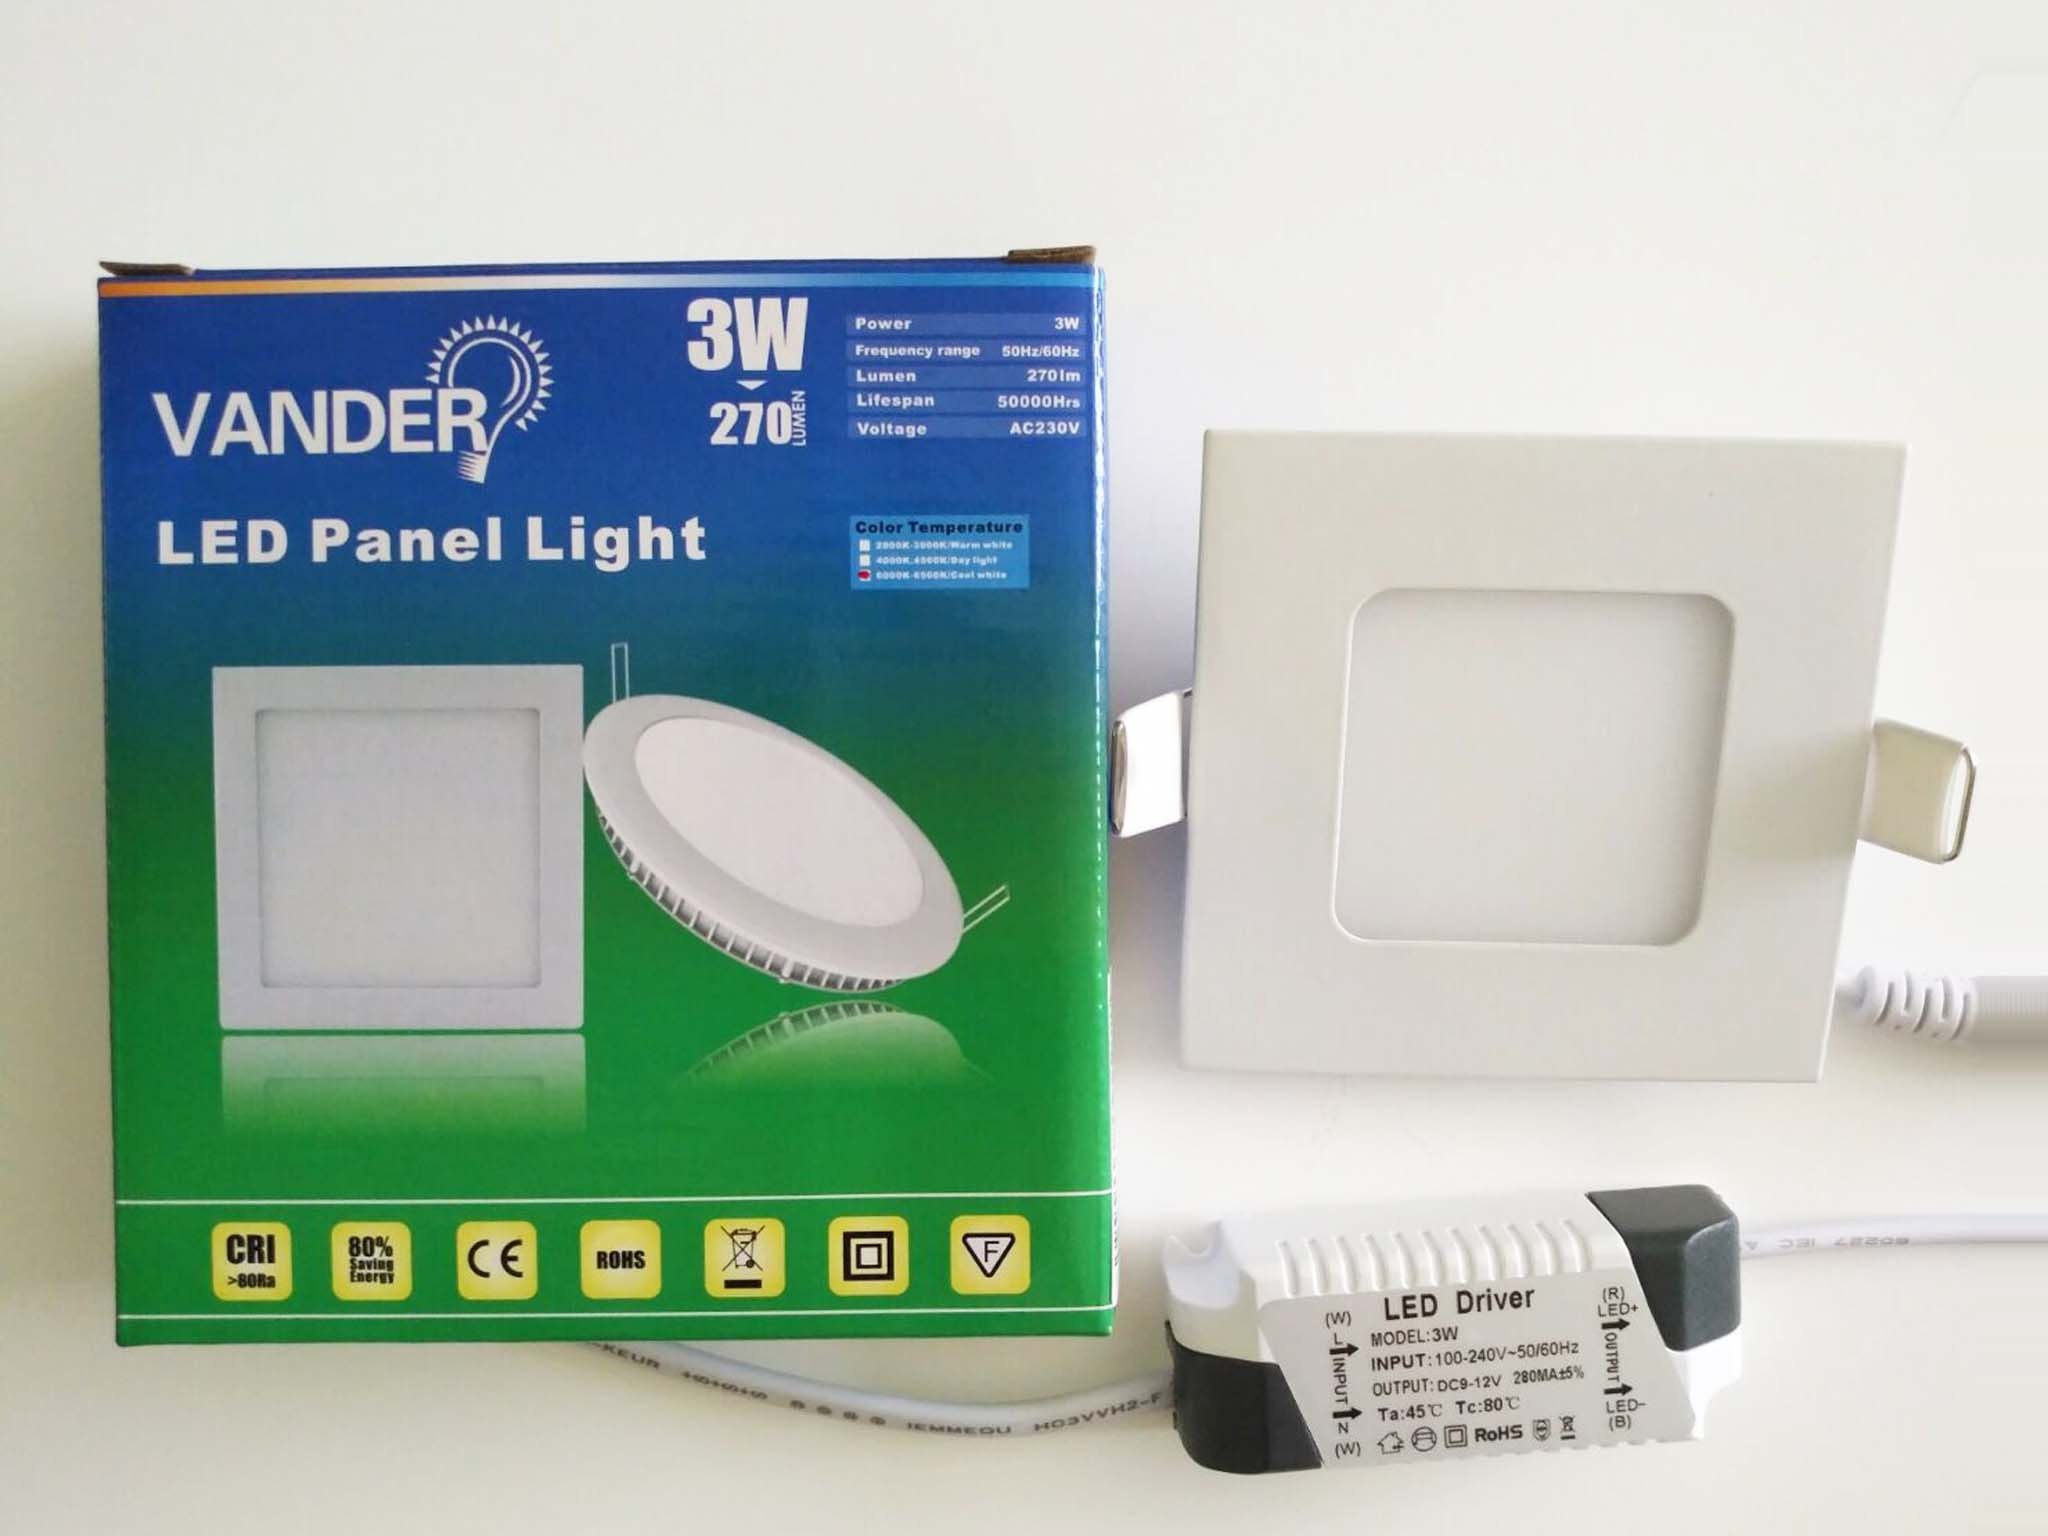 Colorful box package LED panel light 3W